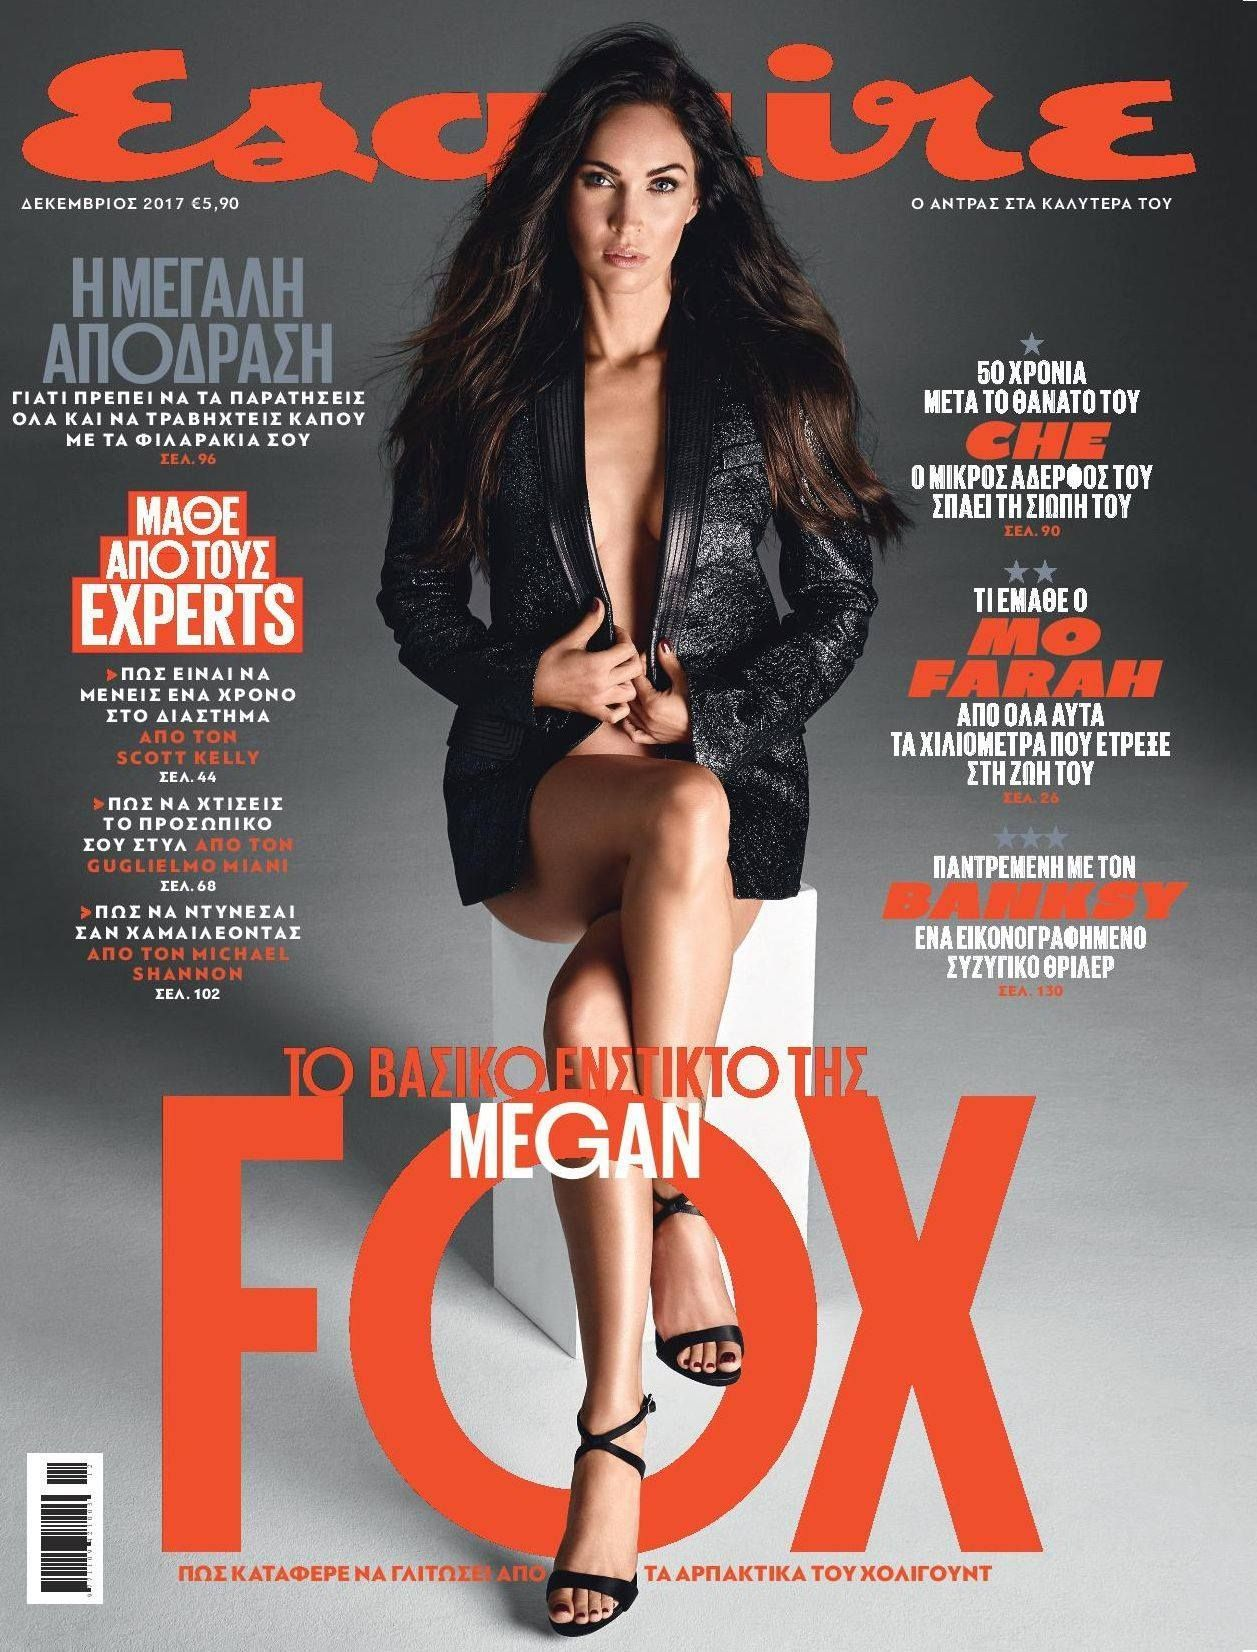 Matchless Megan fox spread situation familiar